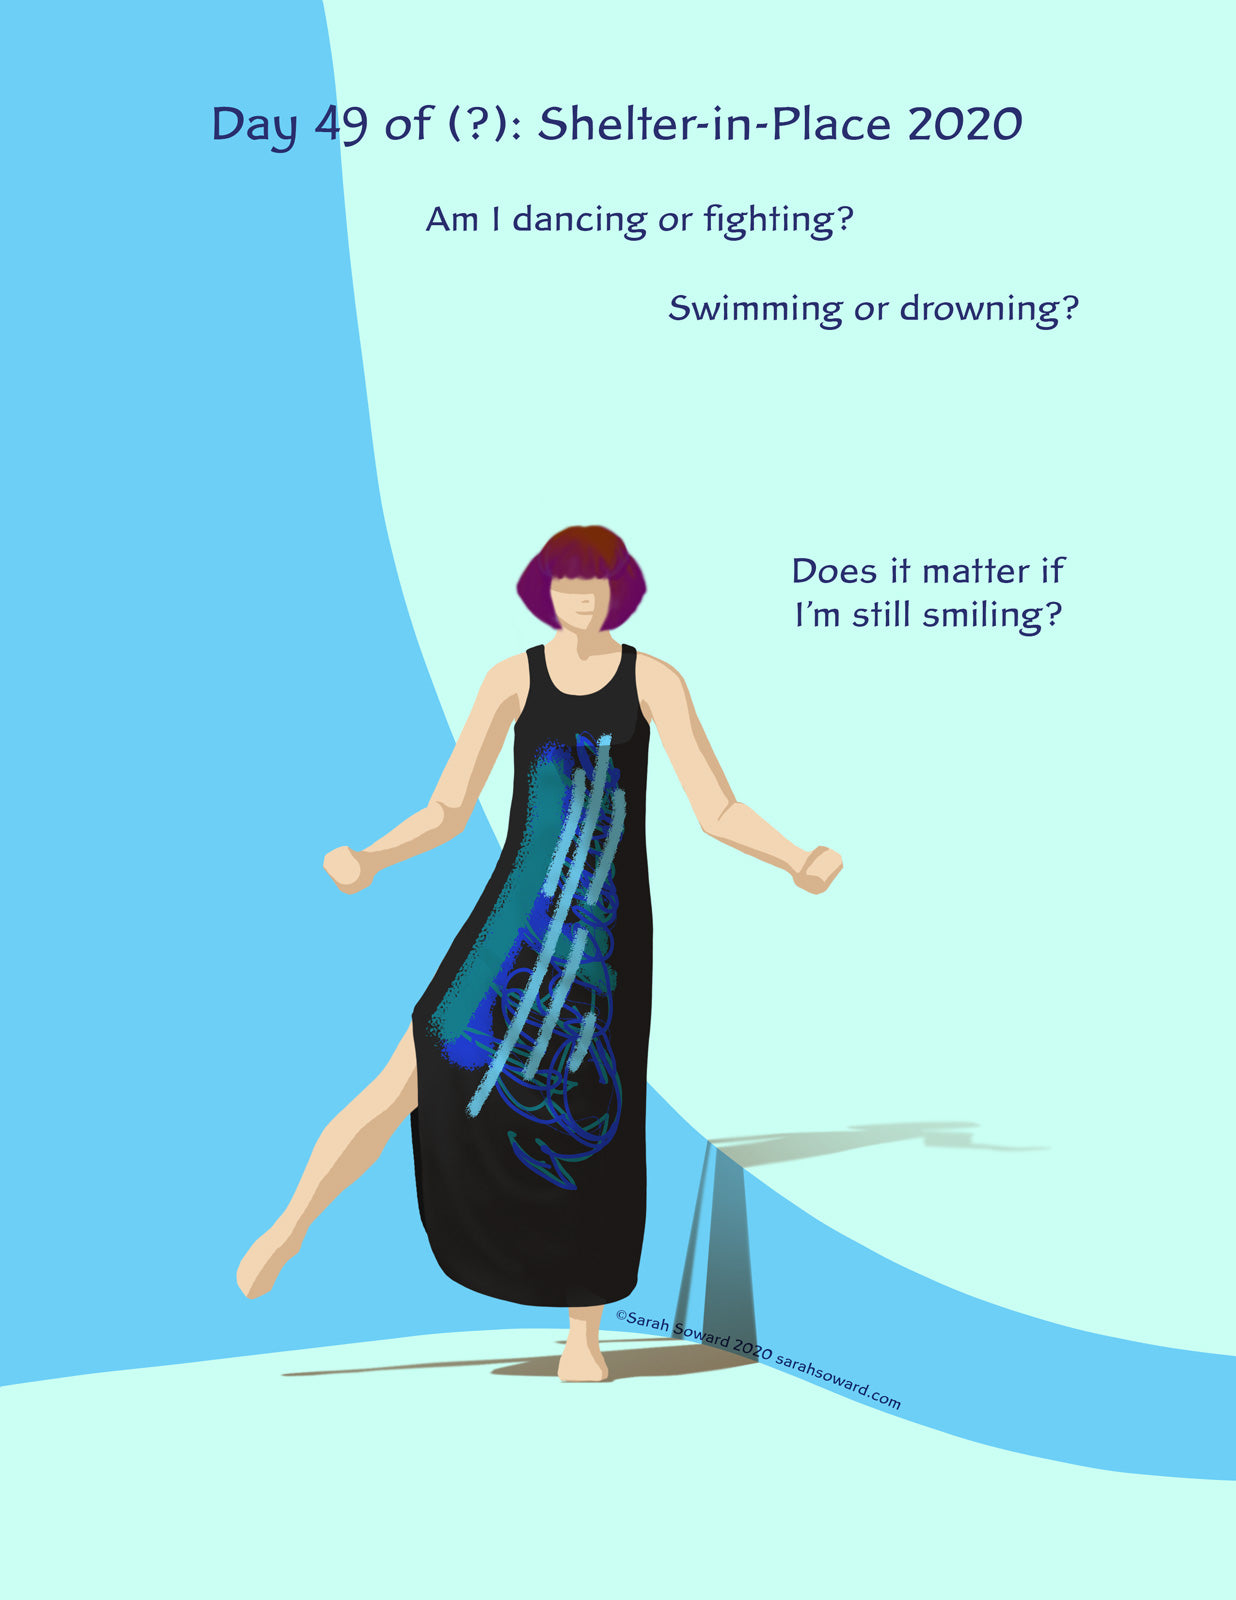 A woman wearing an black dress with a large abstract splash print on it postures oddly, sort of dancing, sort of not. The text on the image reads  Am I dancing or fighting? Swimming or drowning? Does it matter if I'm still smiling?